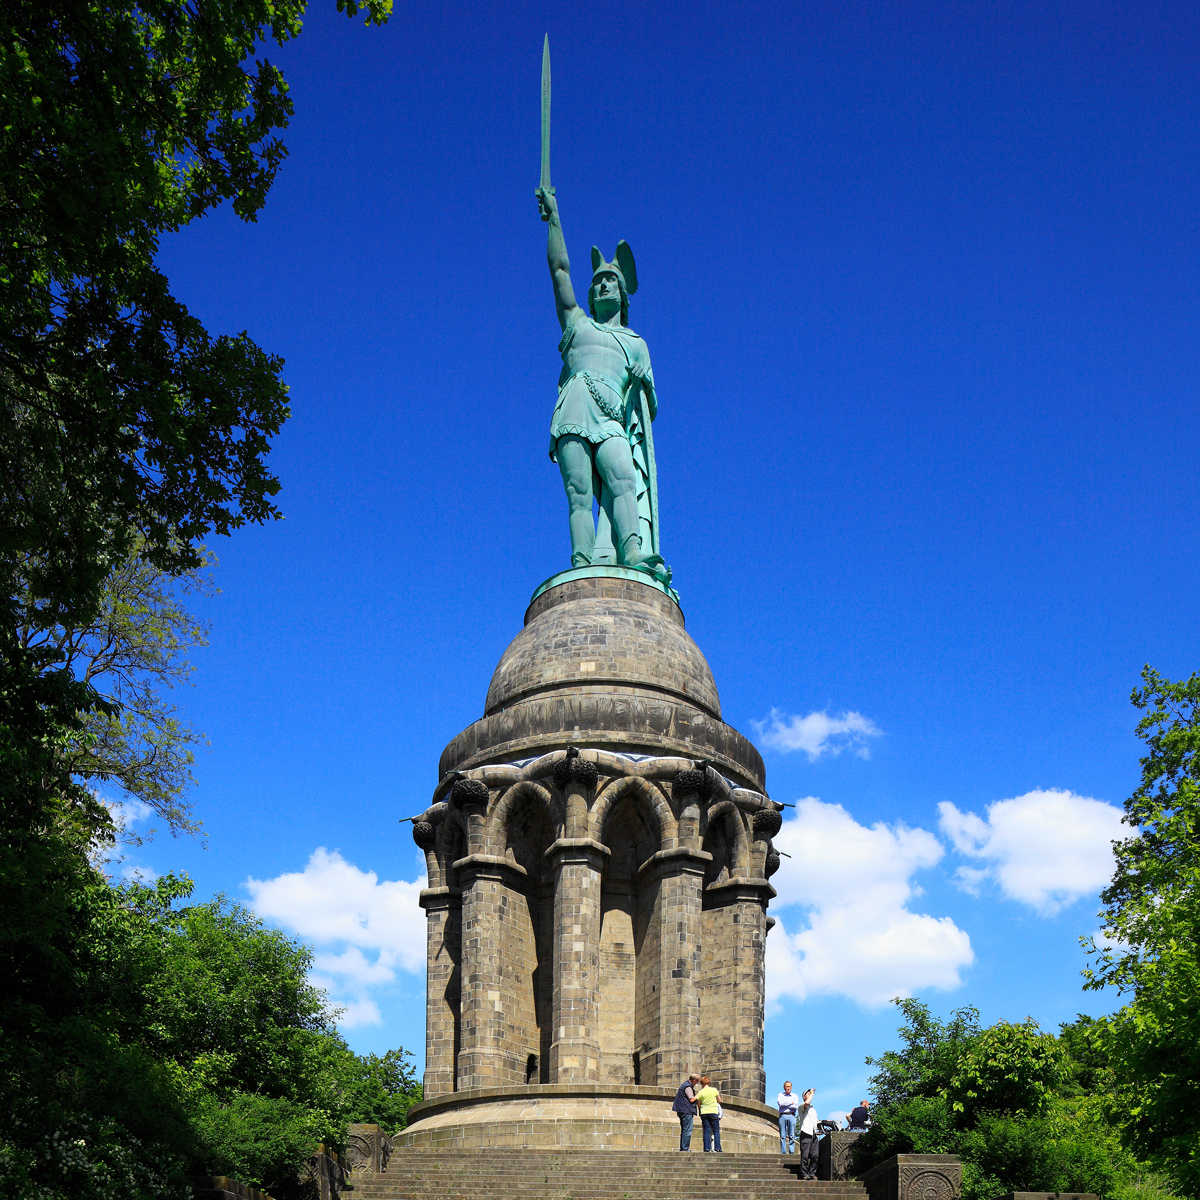 The Hermann Monument, North Rhine-Westphalia, 2013